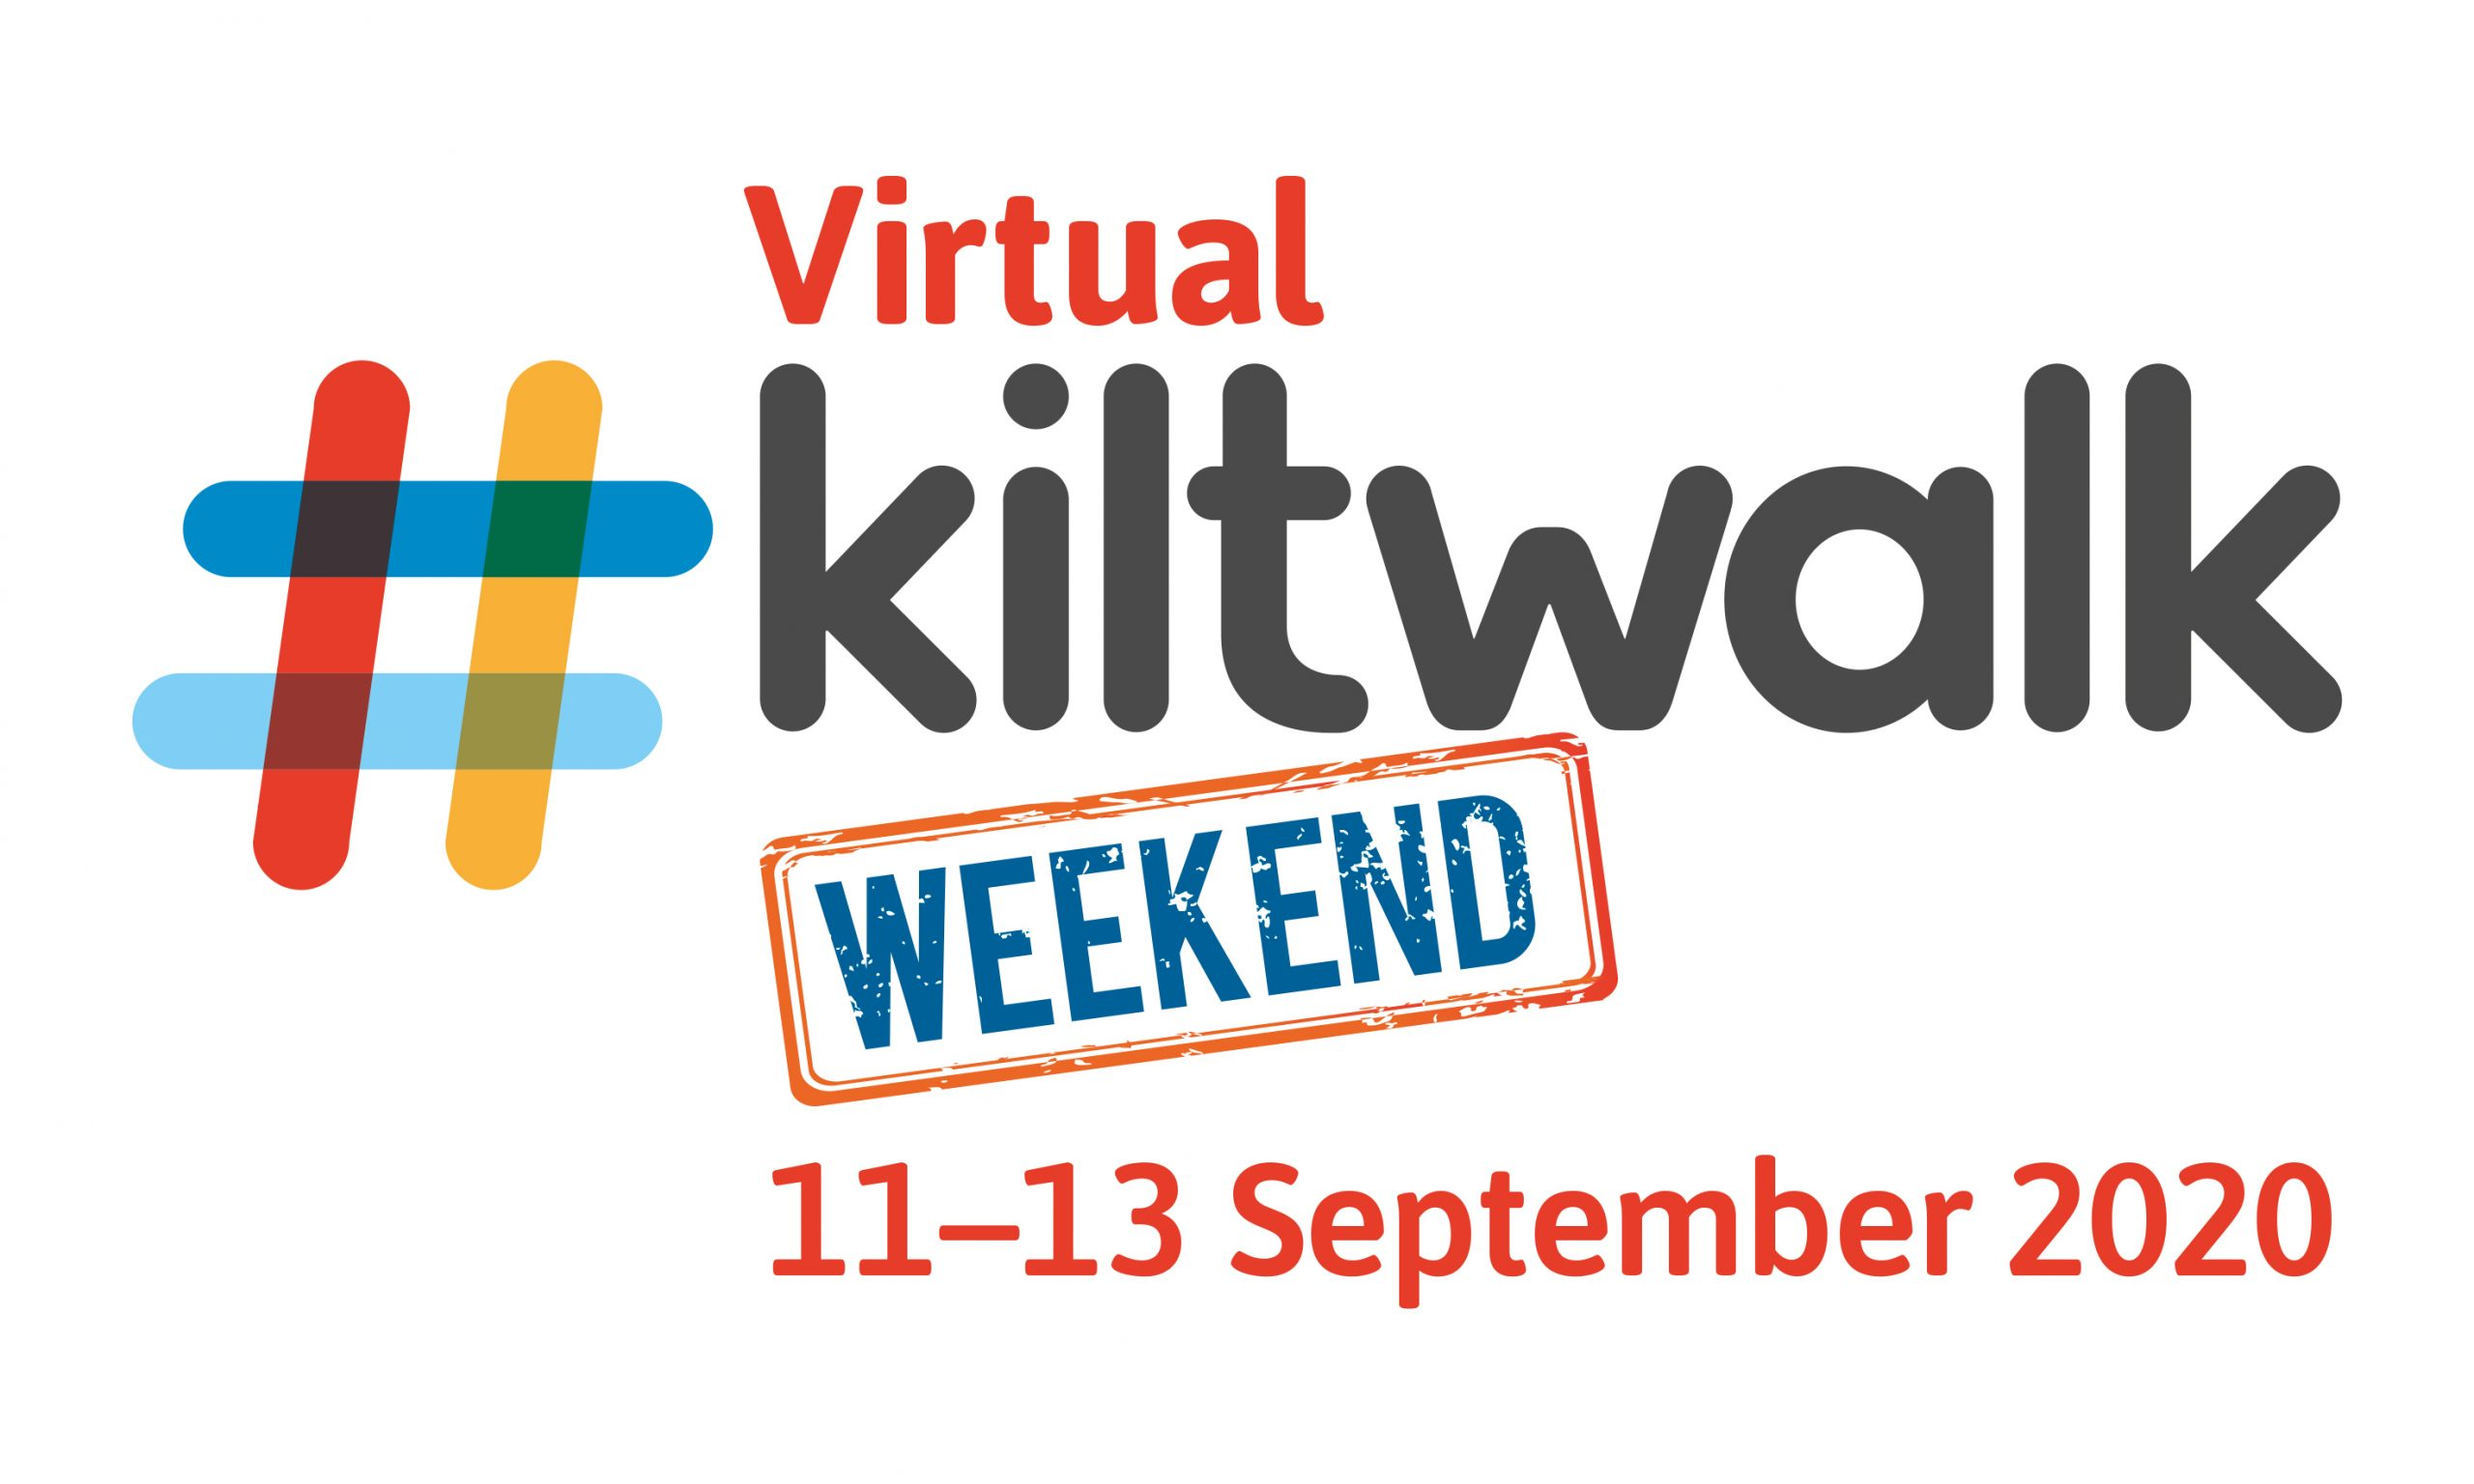 Edinburgh Virtual Kiltwalk Weekend